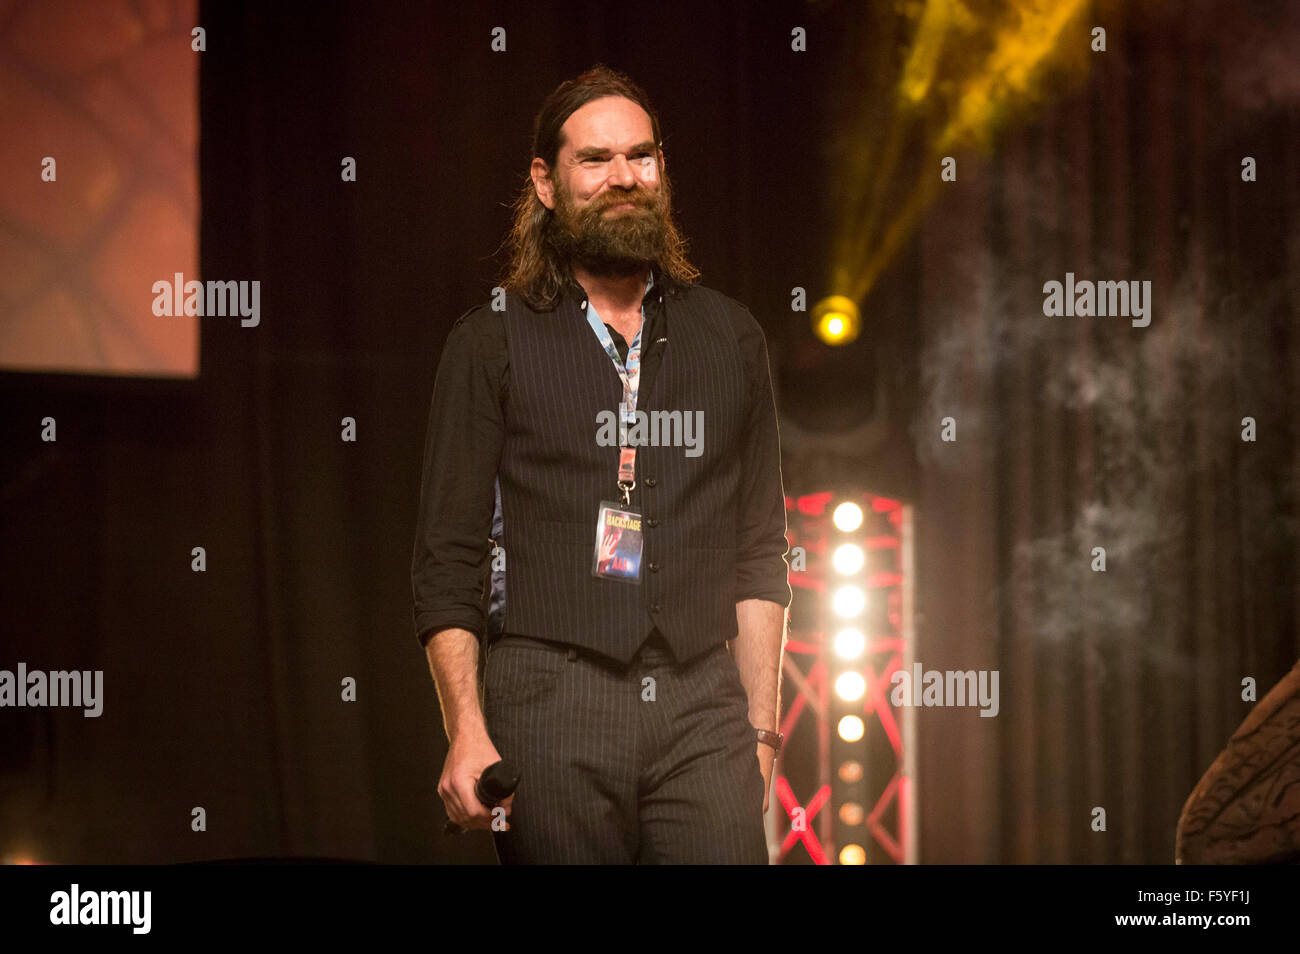 duncan lacroix biography